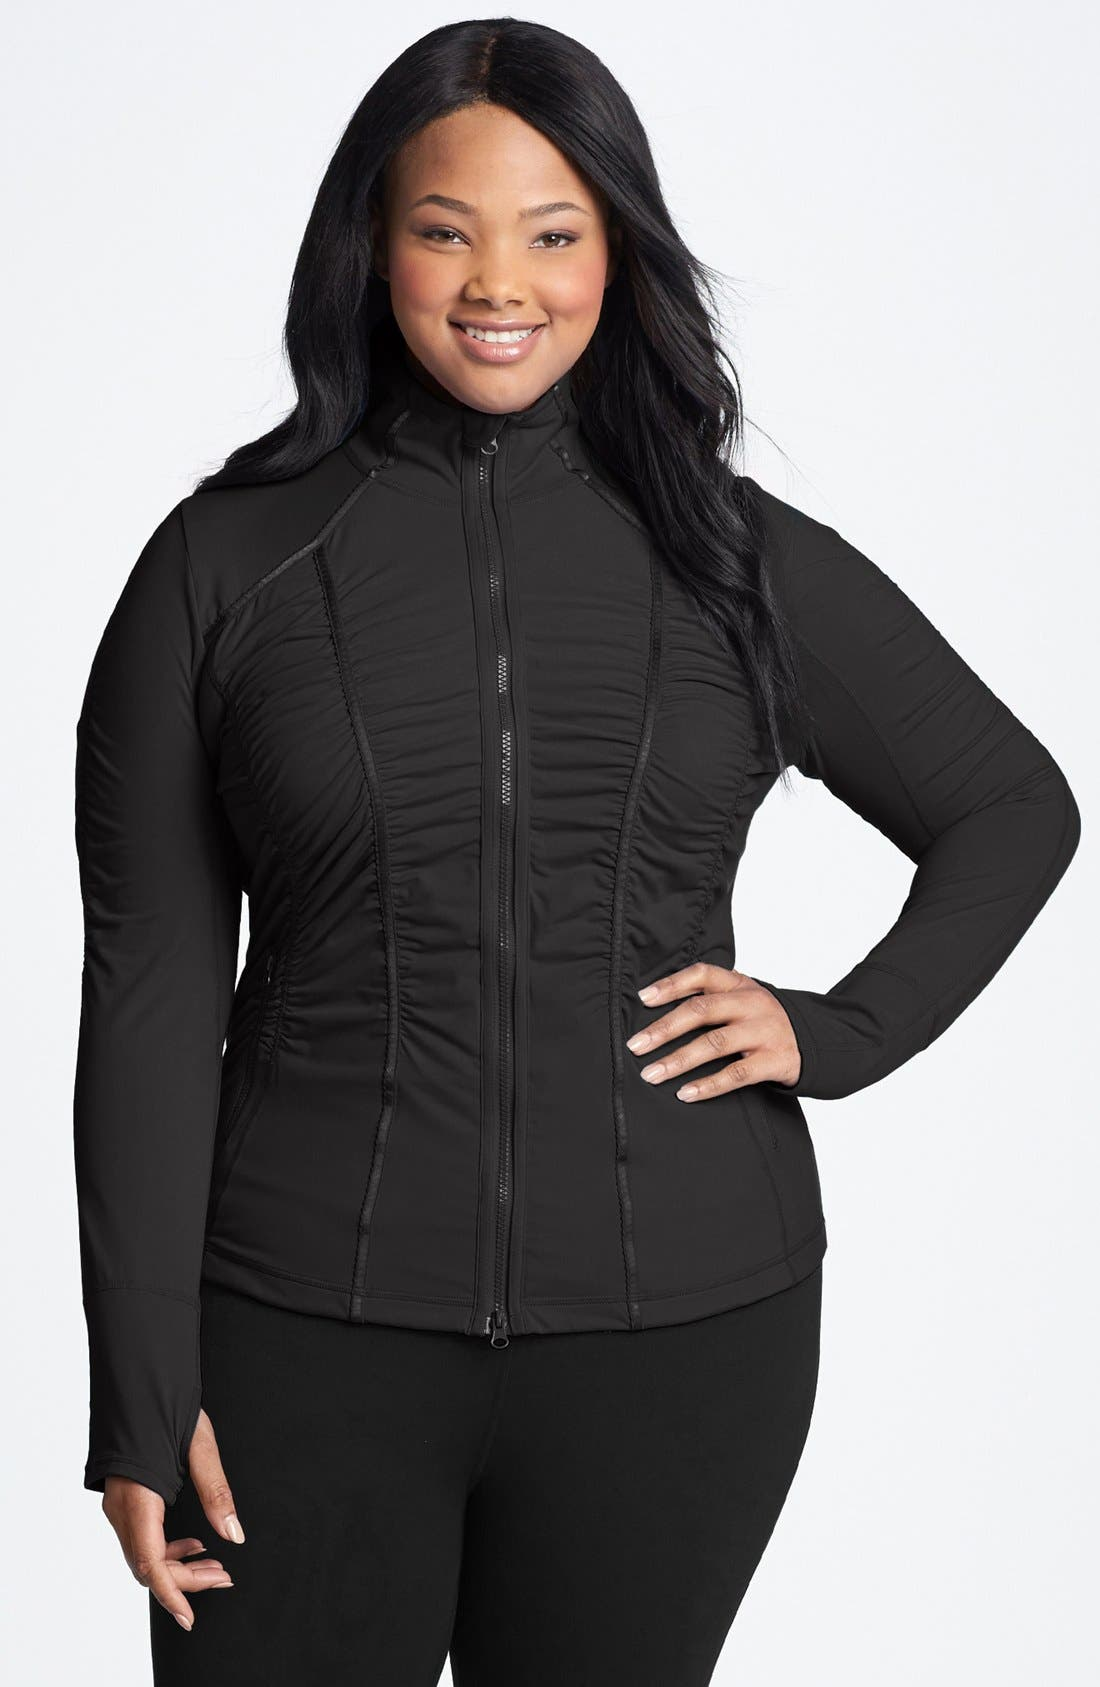 Alternate Image 1 Selected - Zella 'Trinity' Jacket (Plus Size)